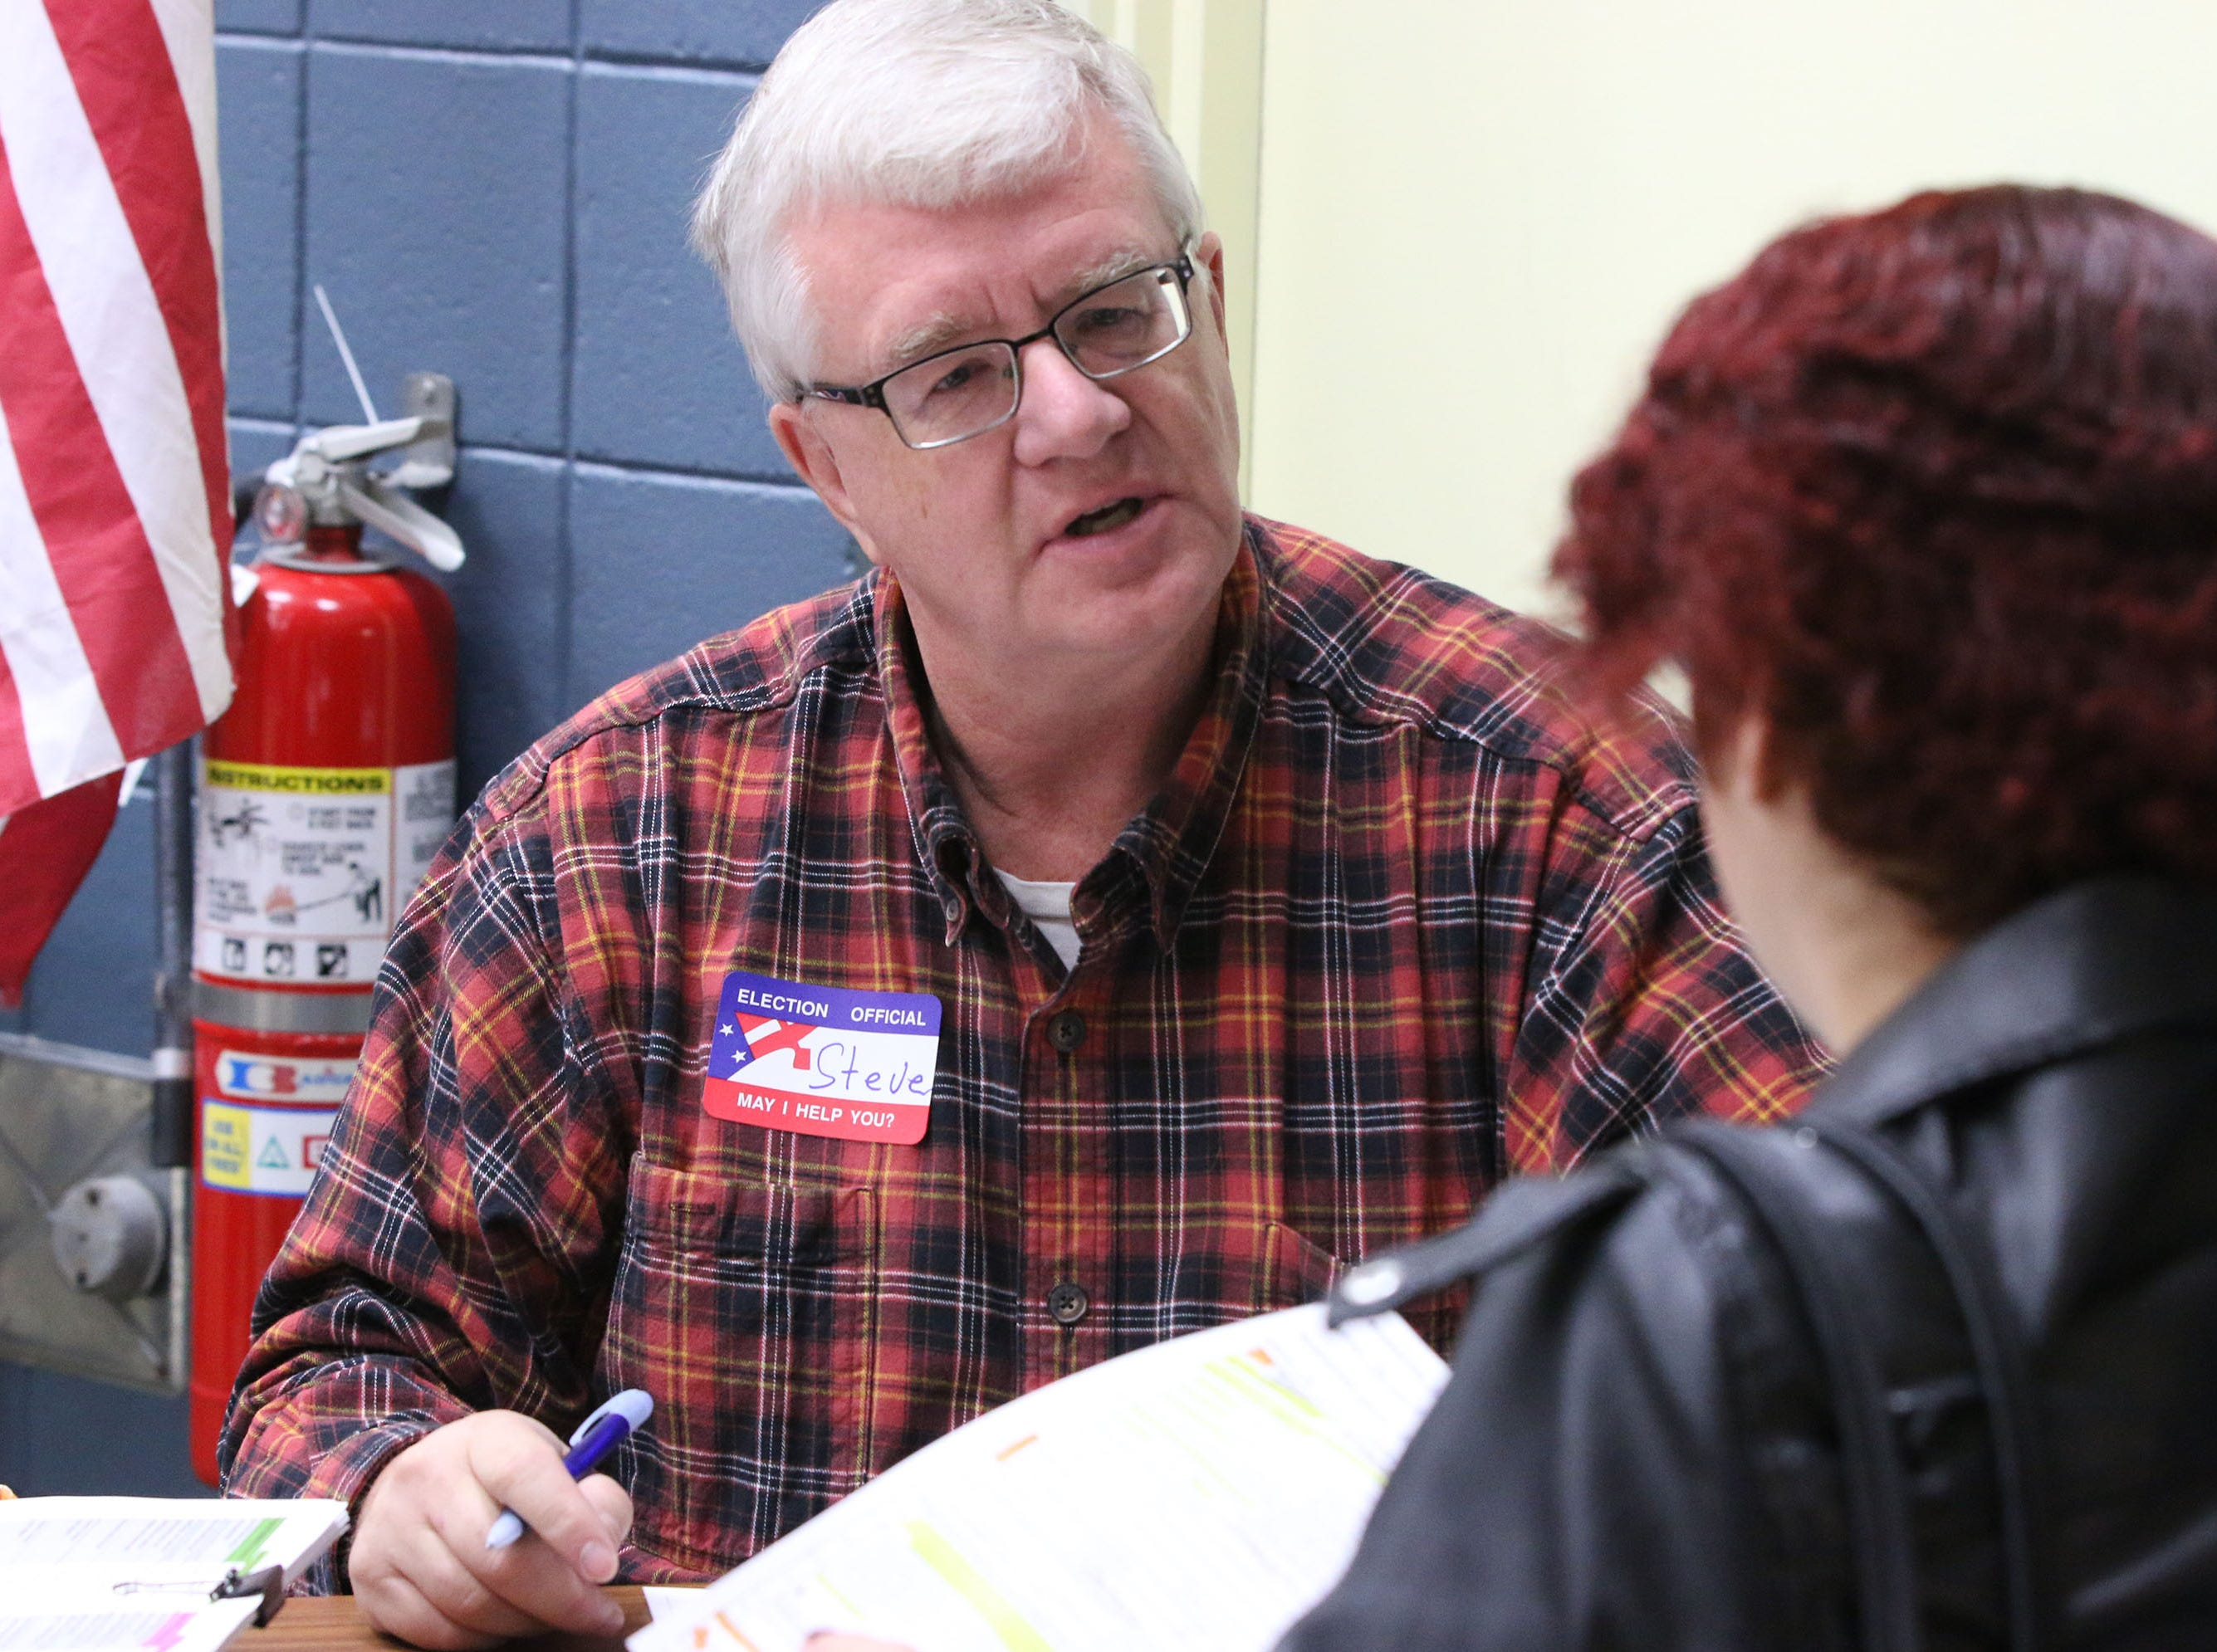 Poll worker Steve Weina, left, explains voter registration instructions to a voter, Tuesday, November 6, 2018, in Sheboygan, Wis.